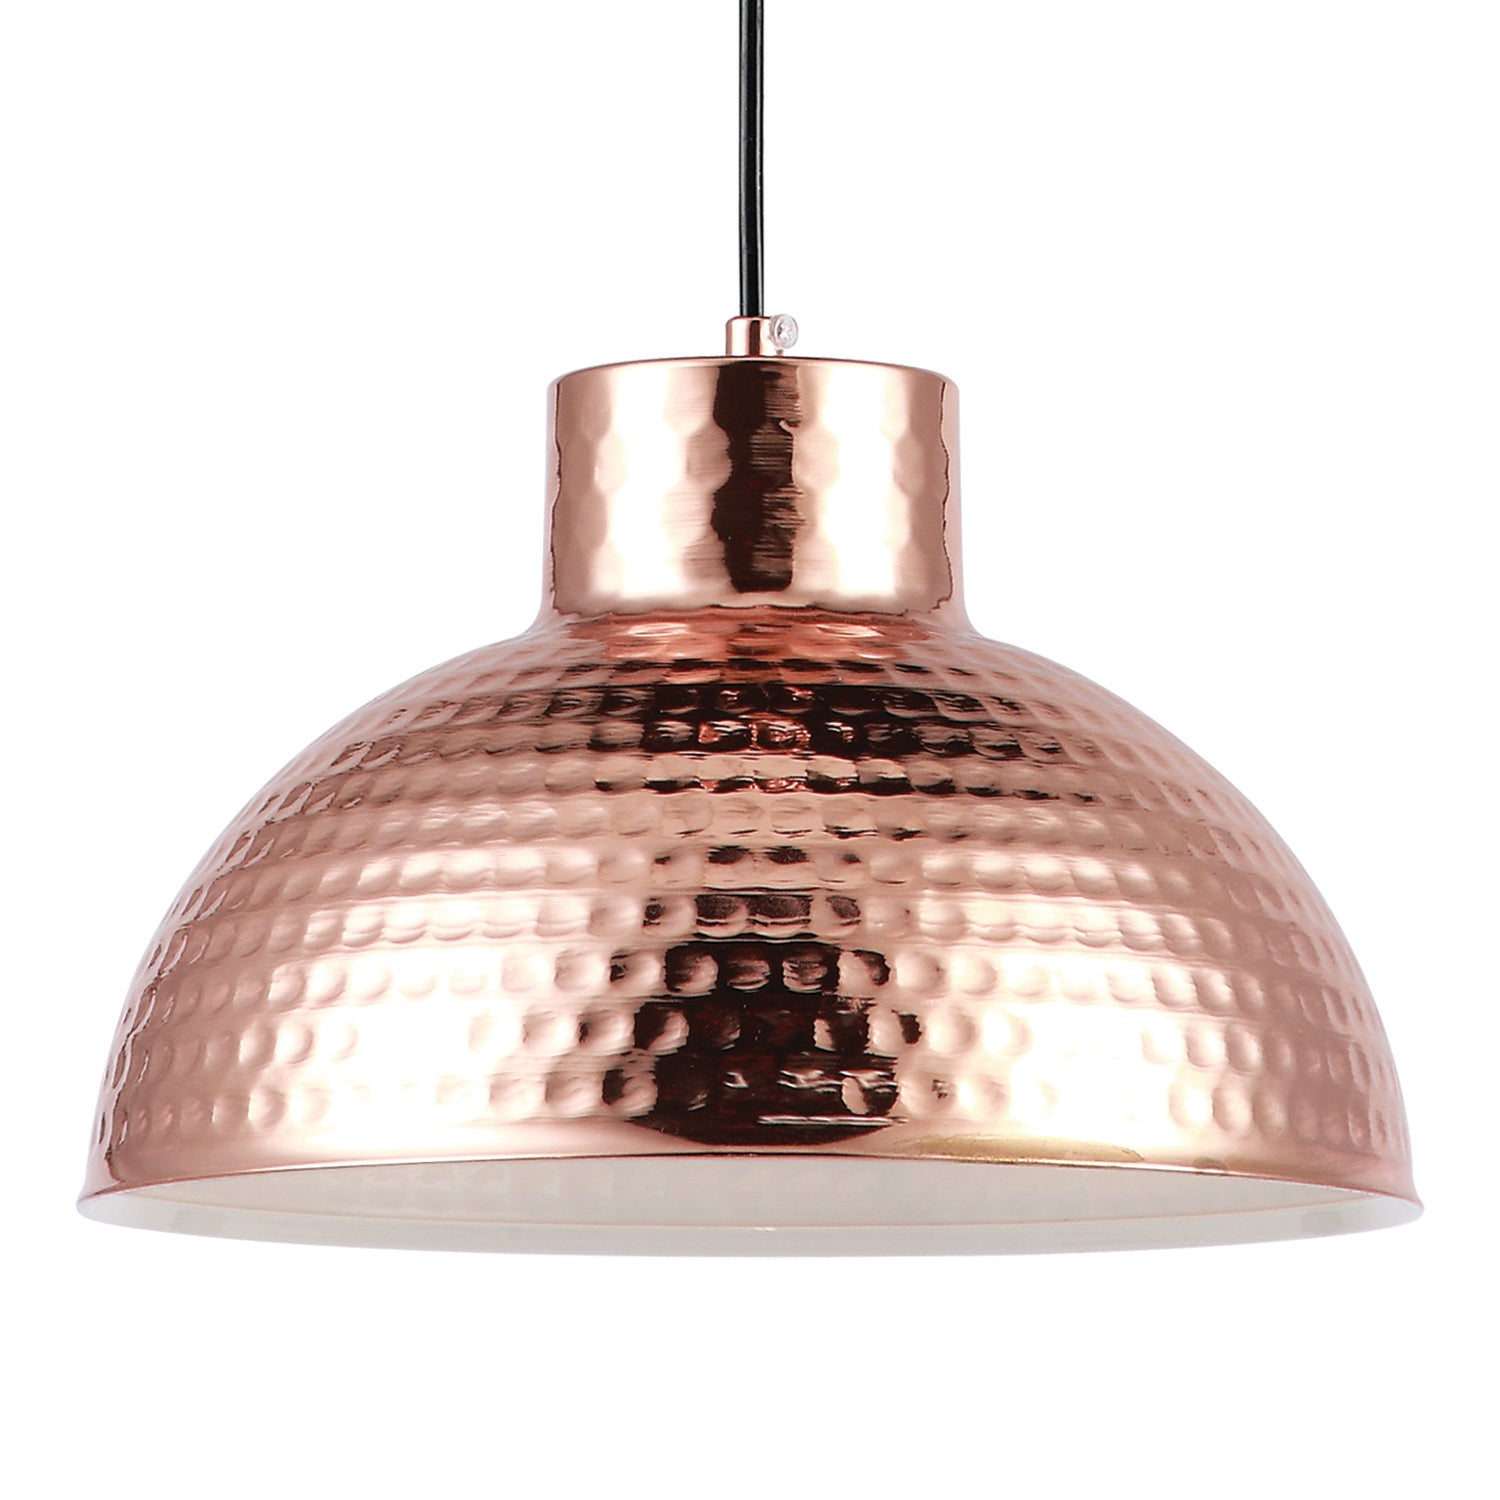 Copper Archway Ceiling Light - David Malik & Son